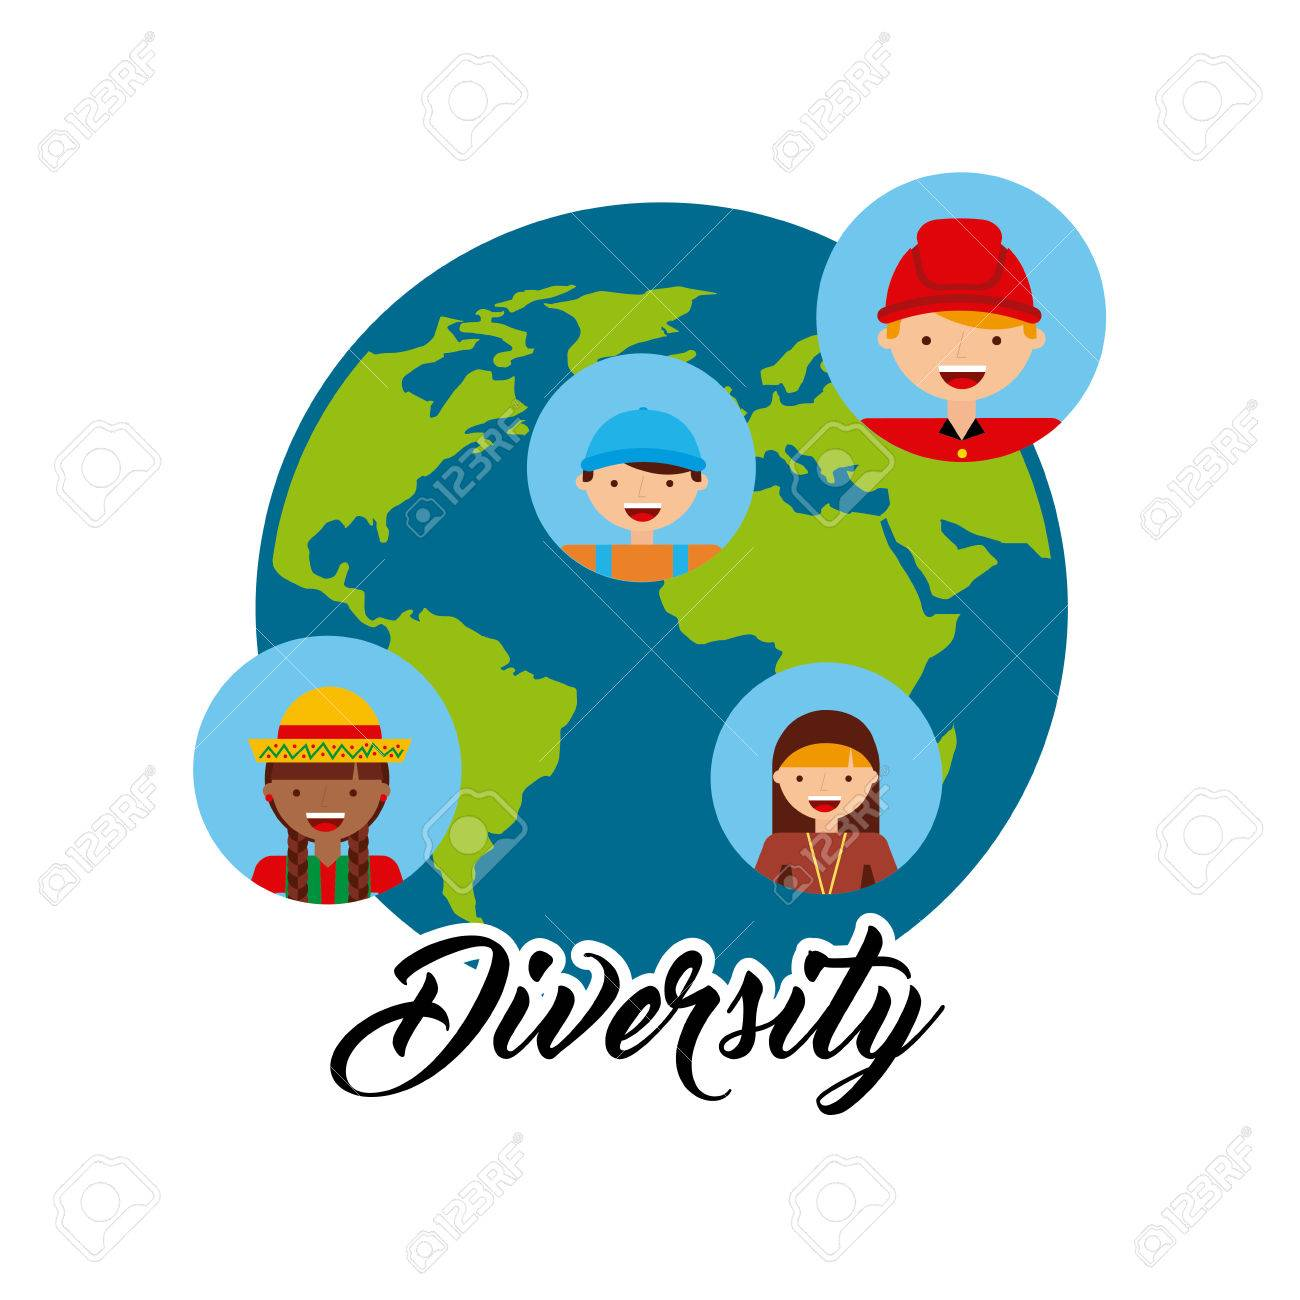 Diversity of world cultures vector illustration design royalty free diversity of world cultures vector illustration design stock vector 62576141 publicscrutiny Choice Image